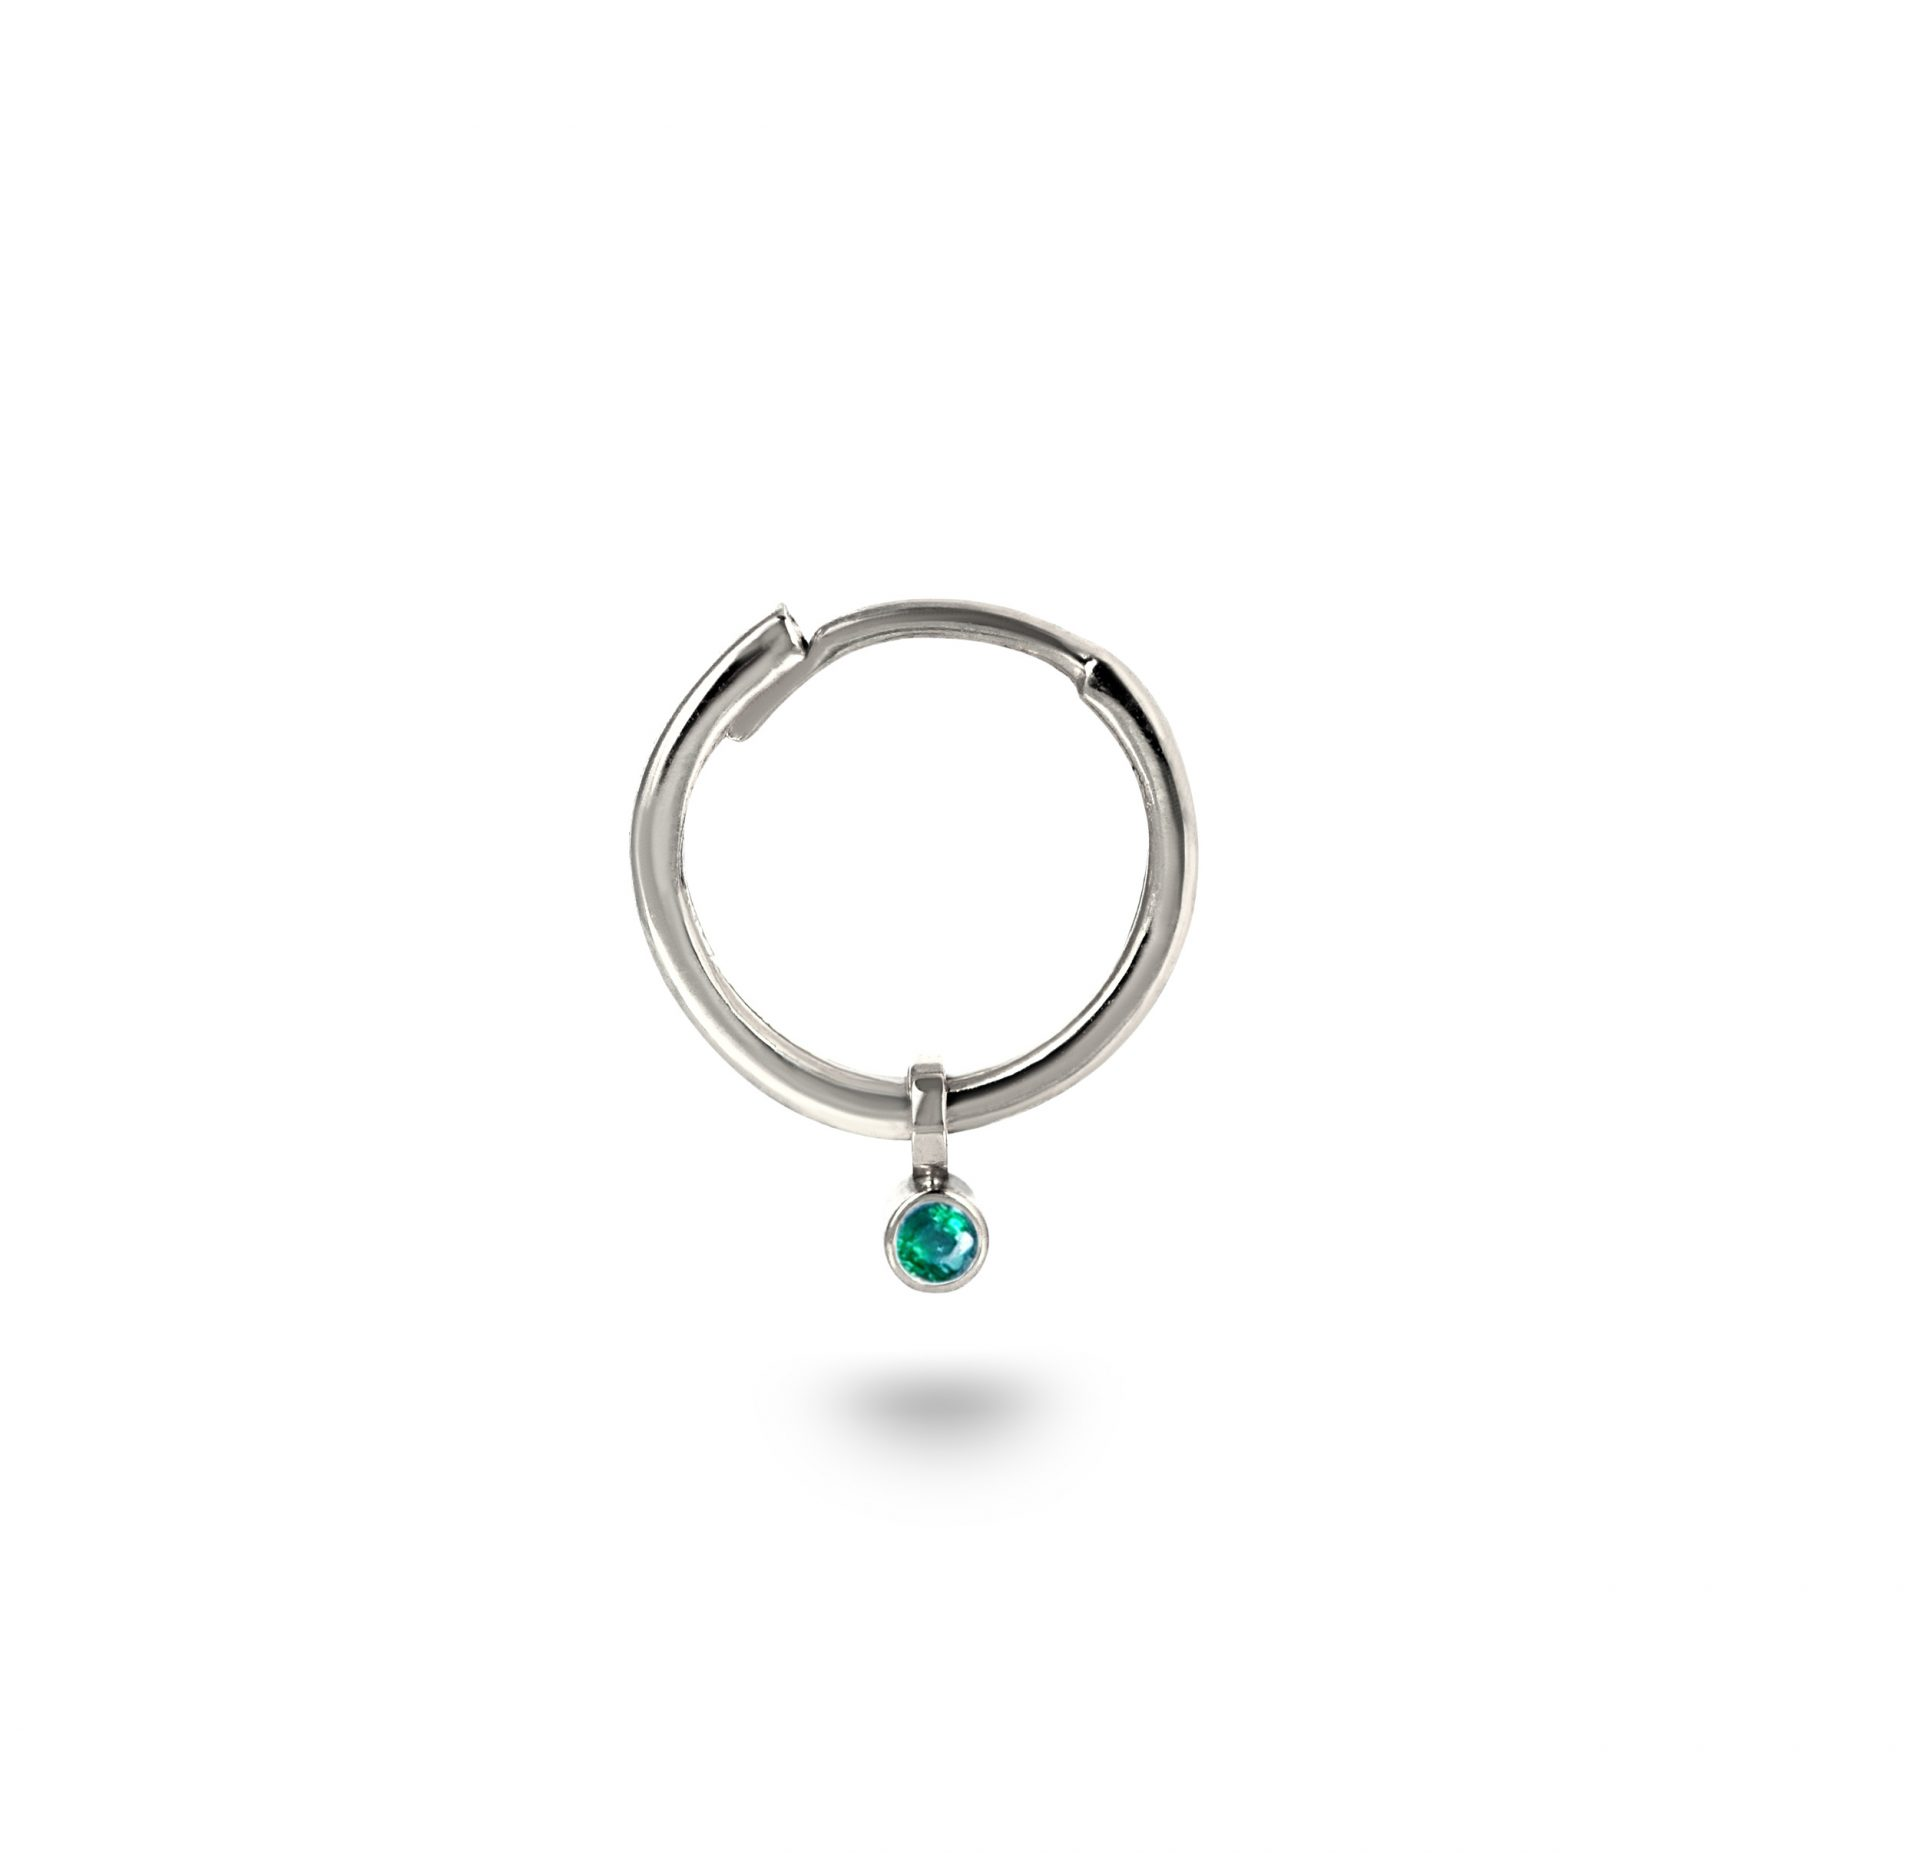 natural-emerald-charm-huggies-hoops-helix-piercing–lena-cohen-london-18k-gold